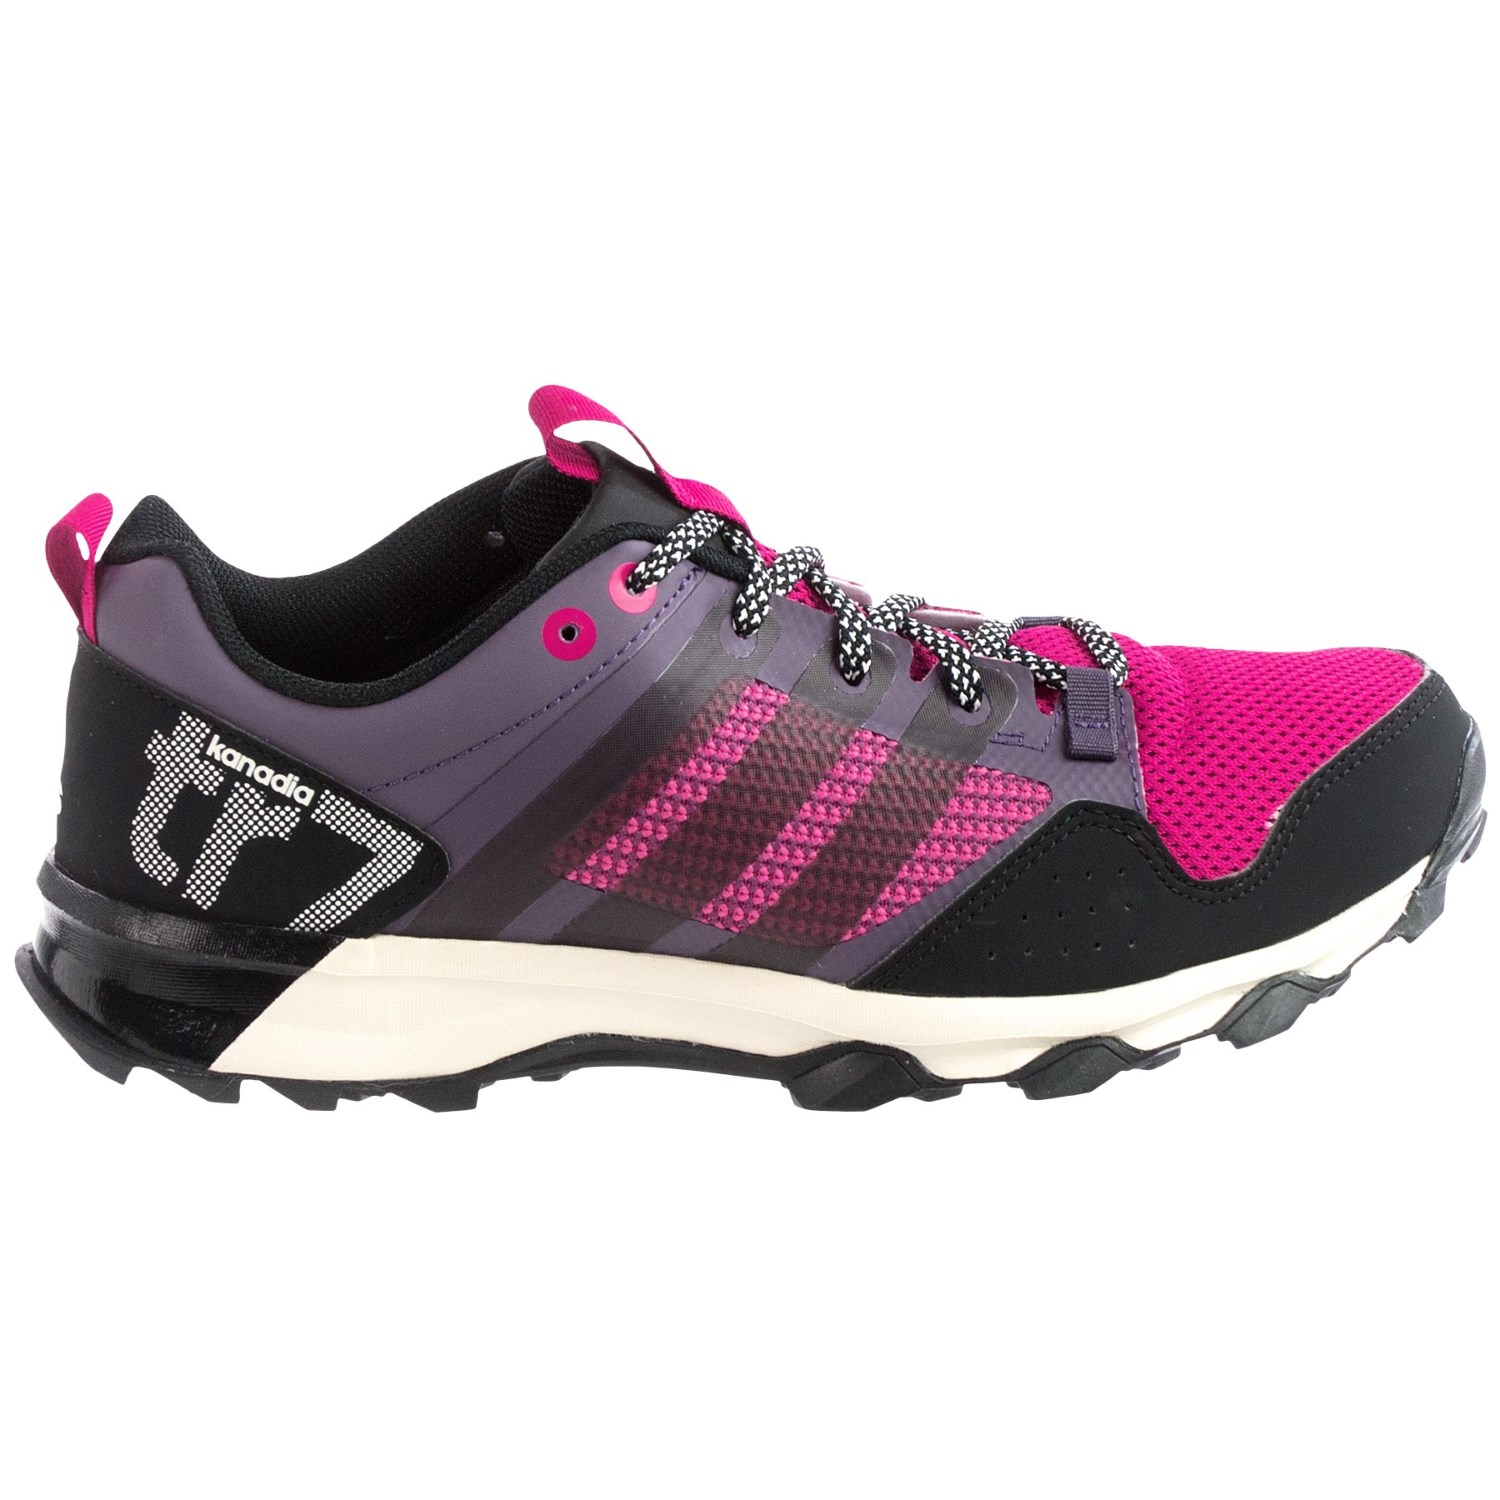 Adidas Outdoor Kanadia 7 Trail Running Shoes For Women